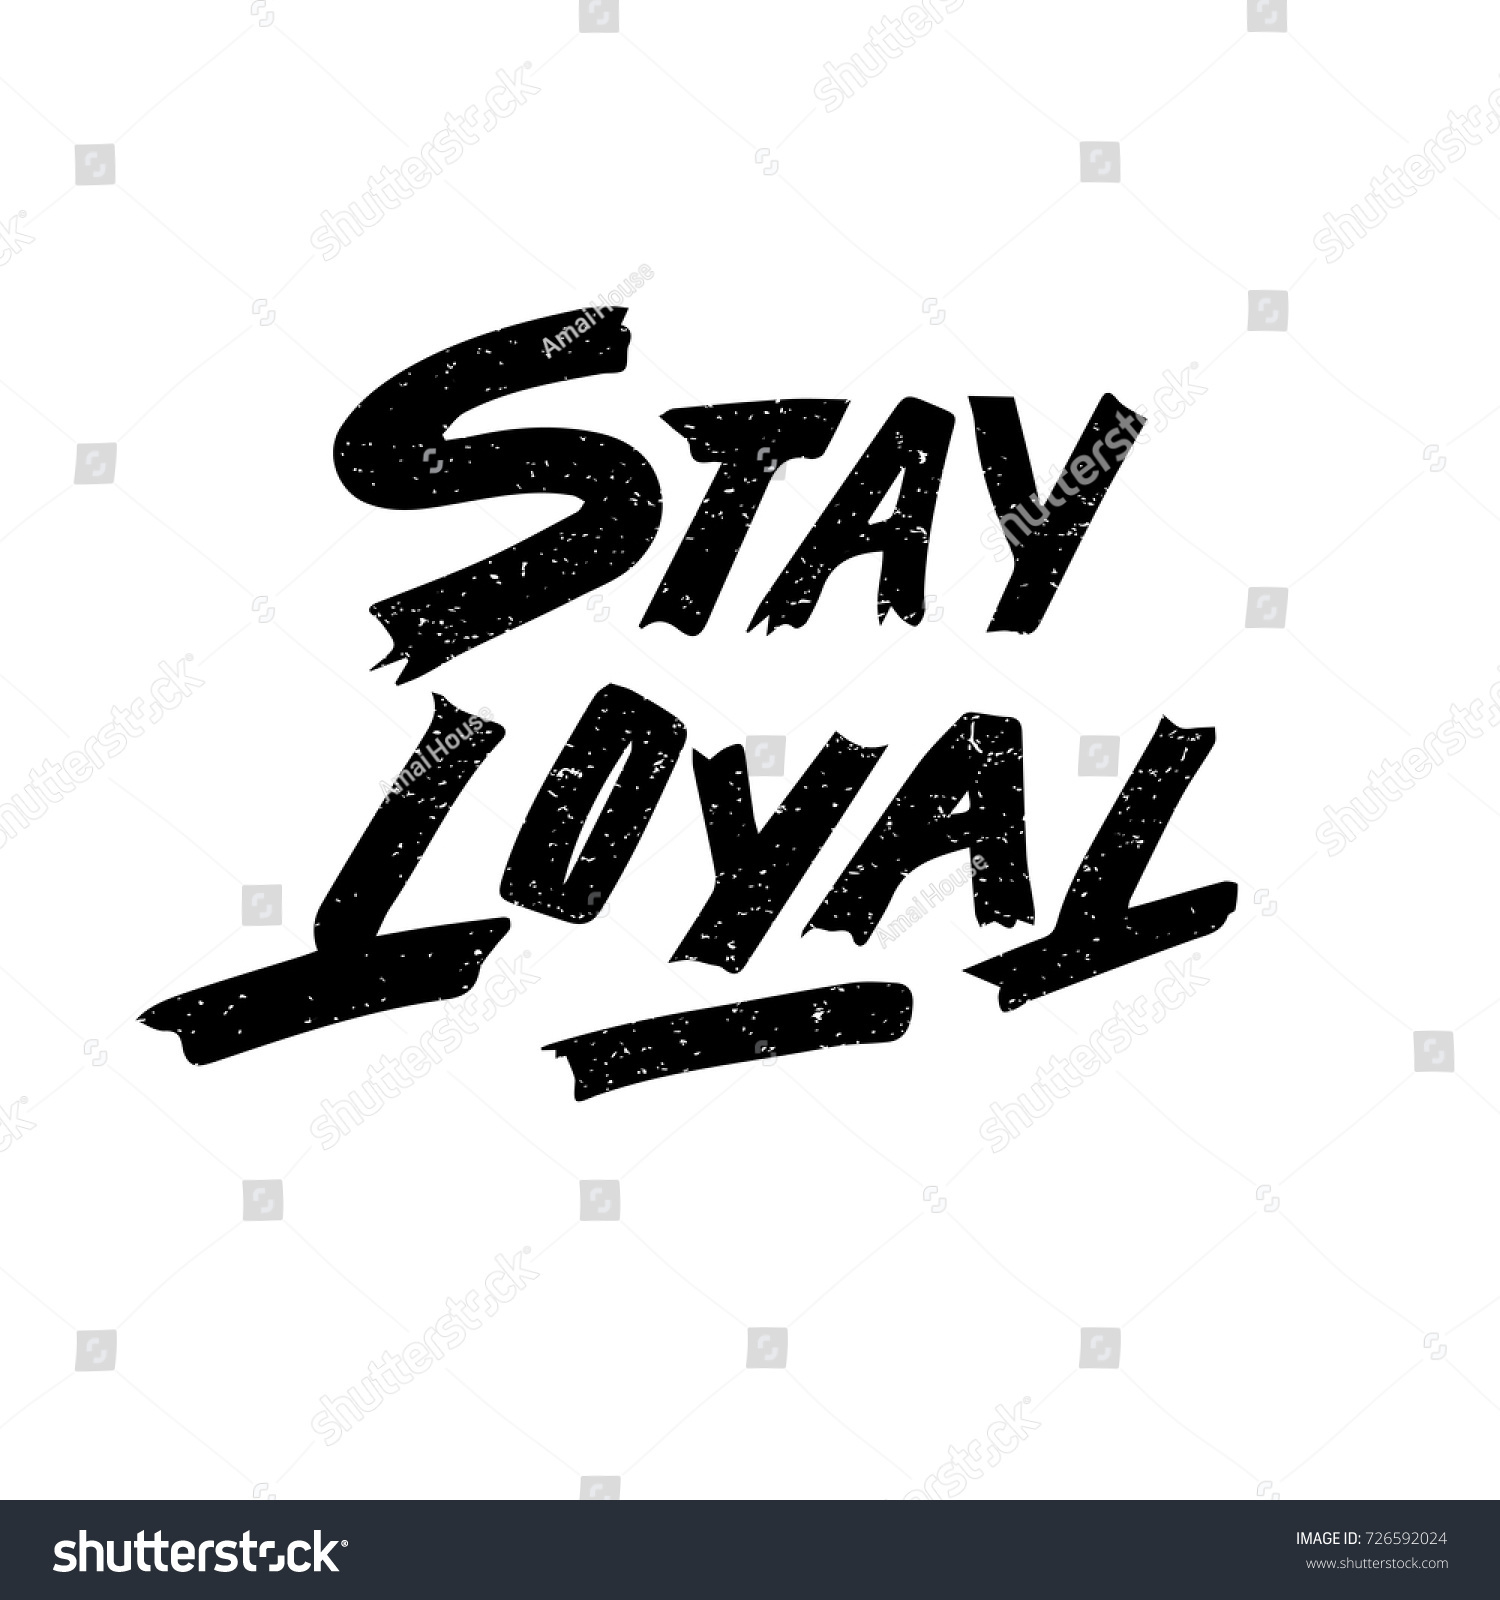 Designs quotes about loyalty quotes about loyalty quotes about loyalty - Stay Loyal Quote Ink Hand Lettering Modern Brush Calligraphy Handwritten Phrase Inspiration